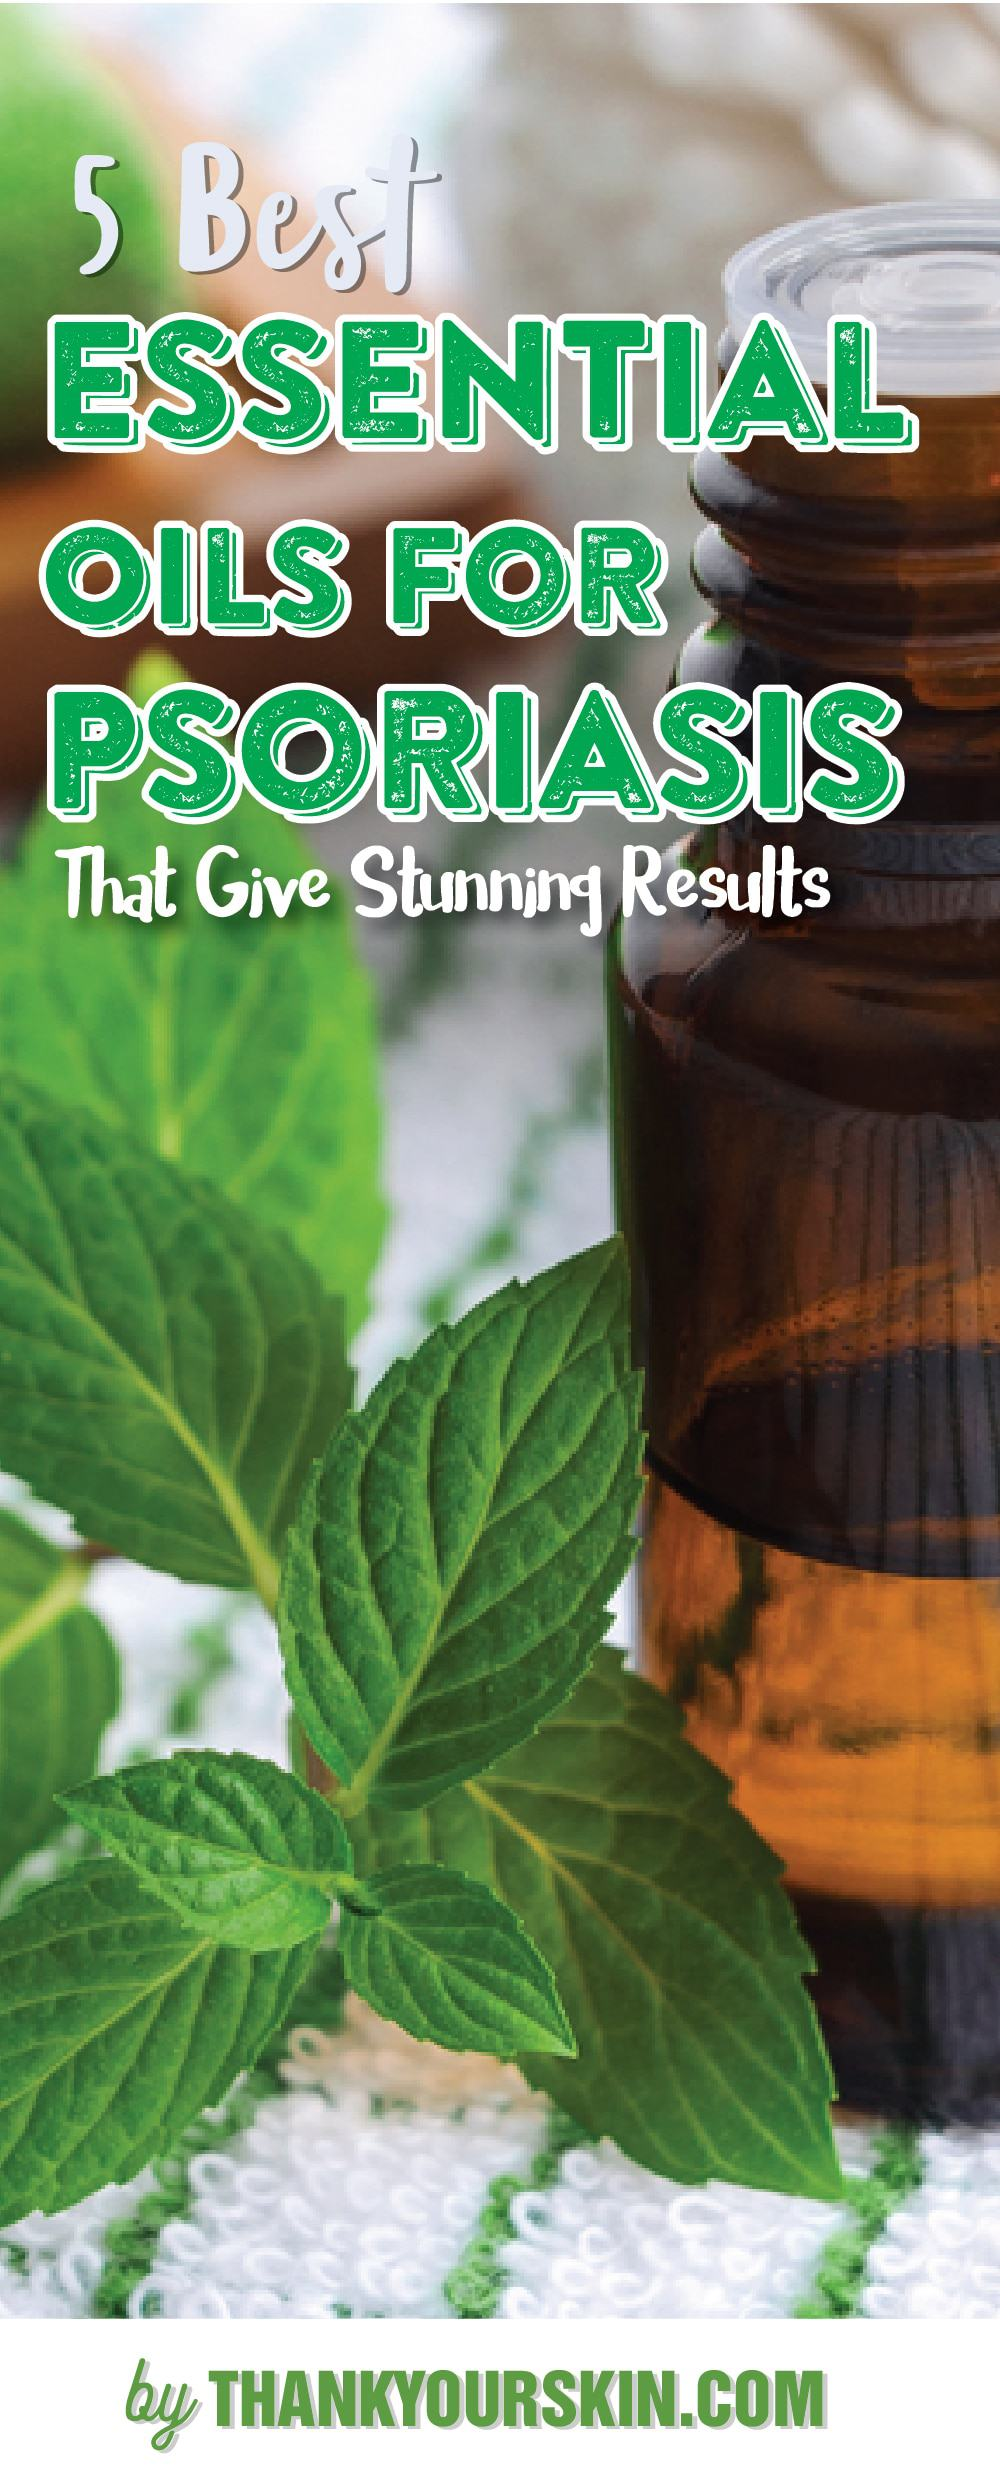 Best Essential Oils For prosiasis